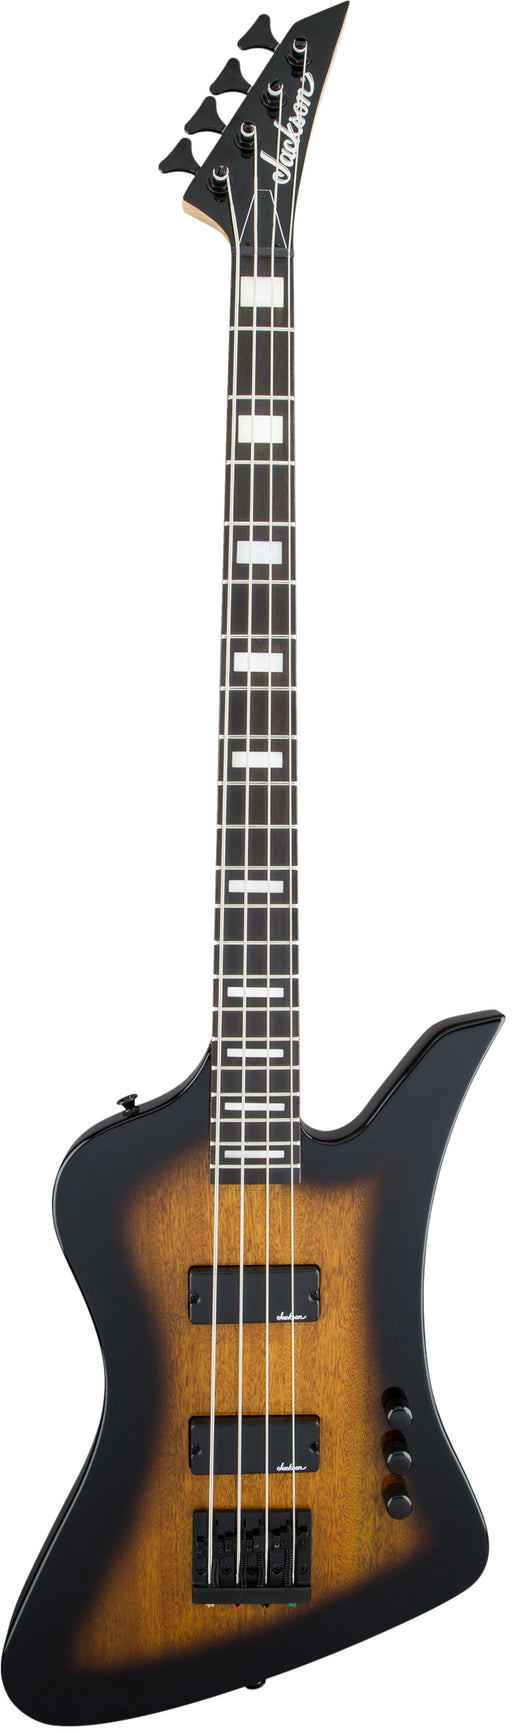 Jackson JS Series Kelly Bird Bass IV JS2 4-String Electric Bass - Tobacco Burst